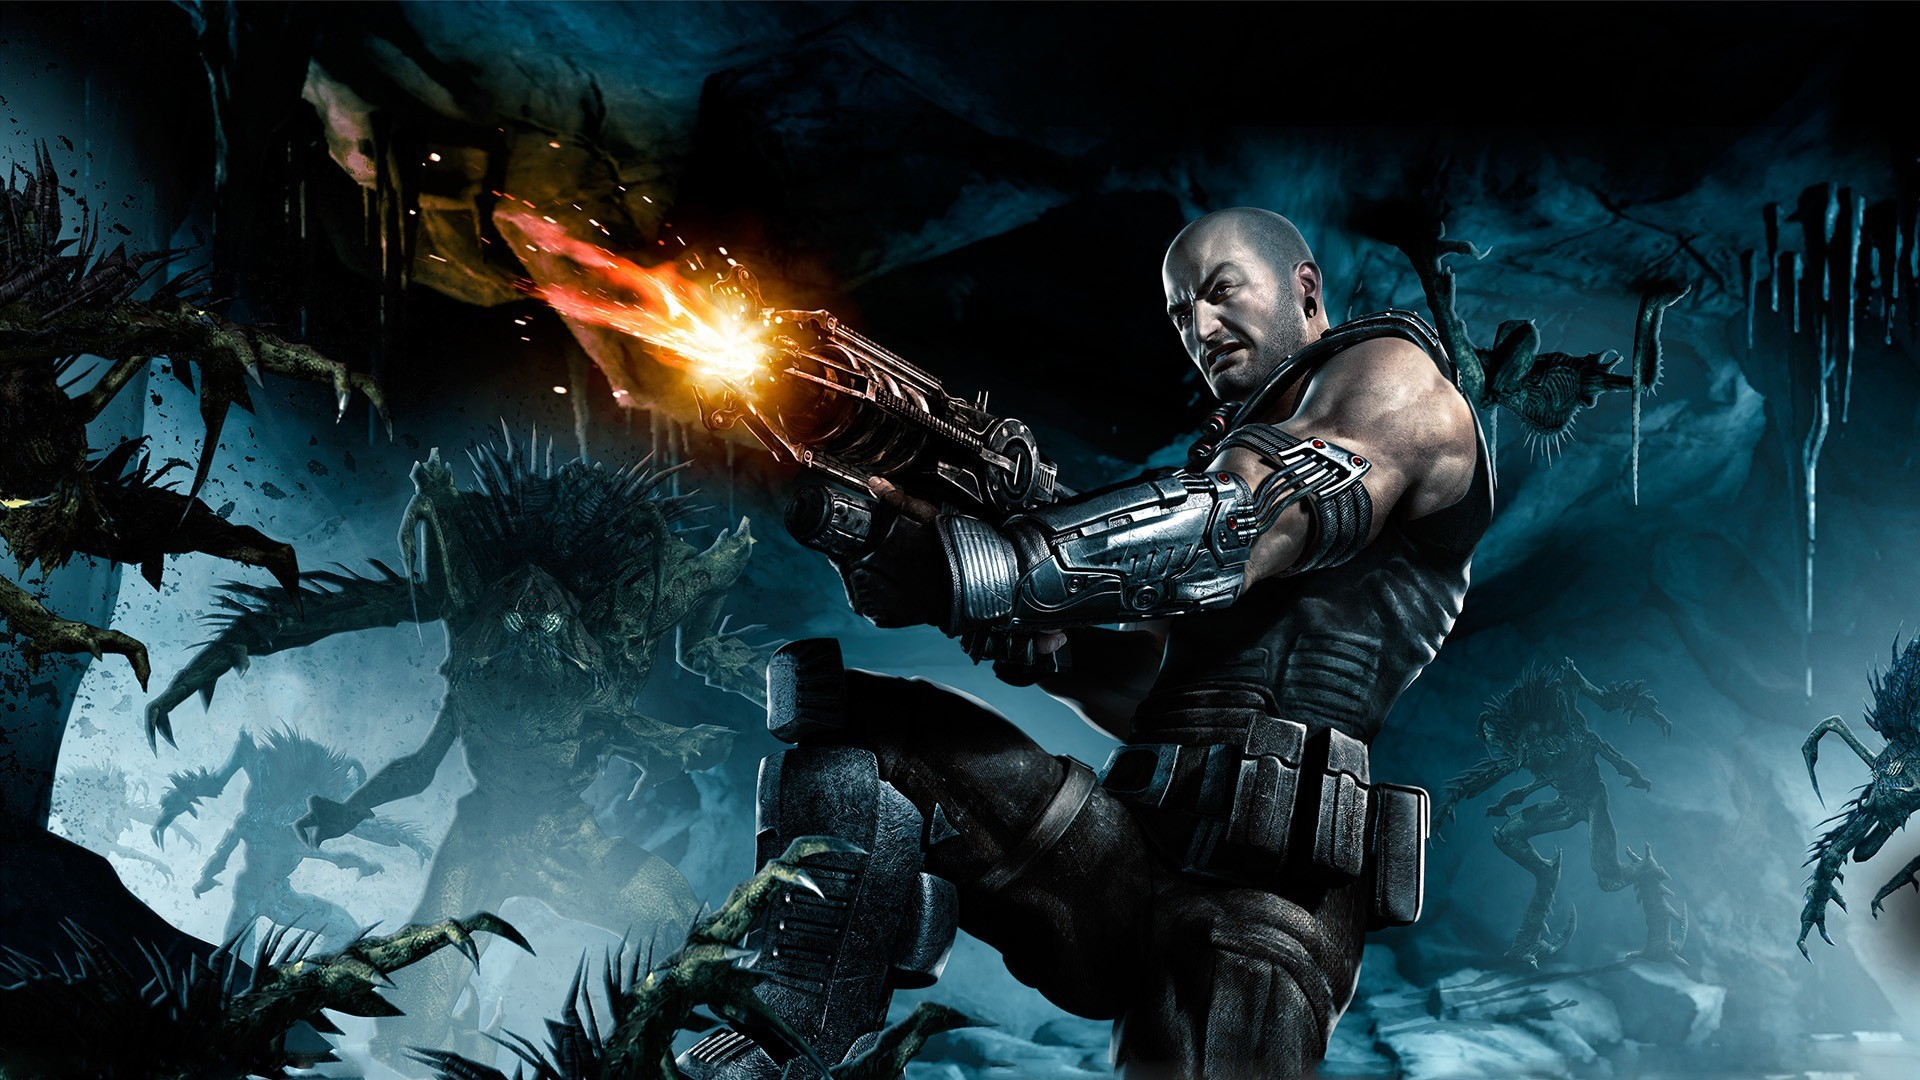 video games Red Faction HD Wallpaper